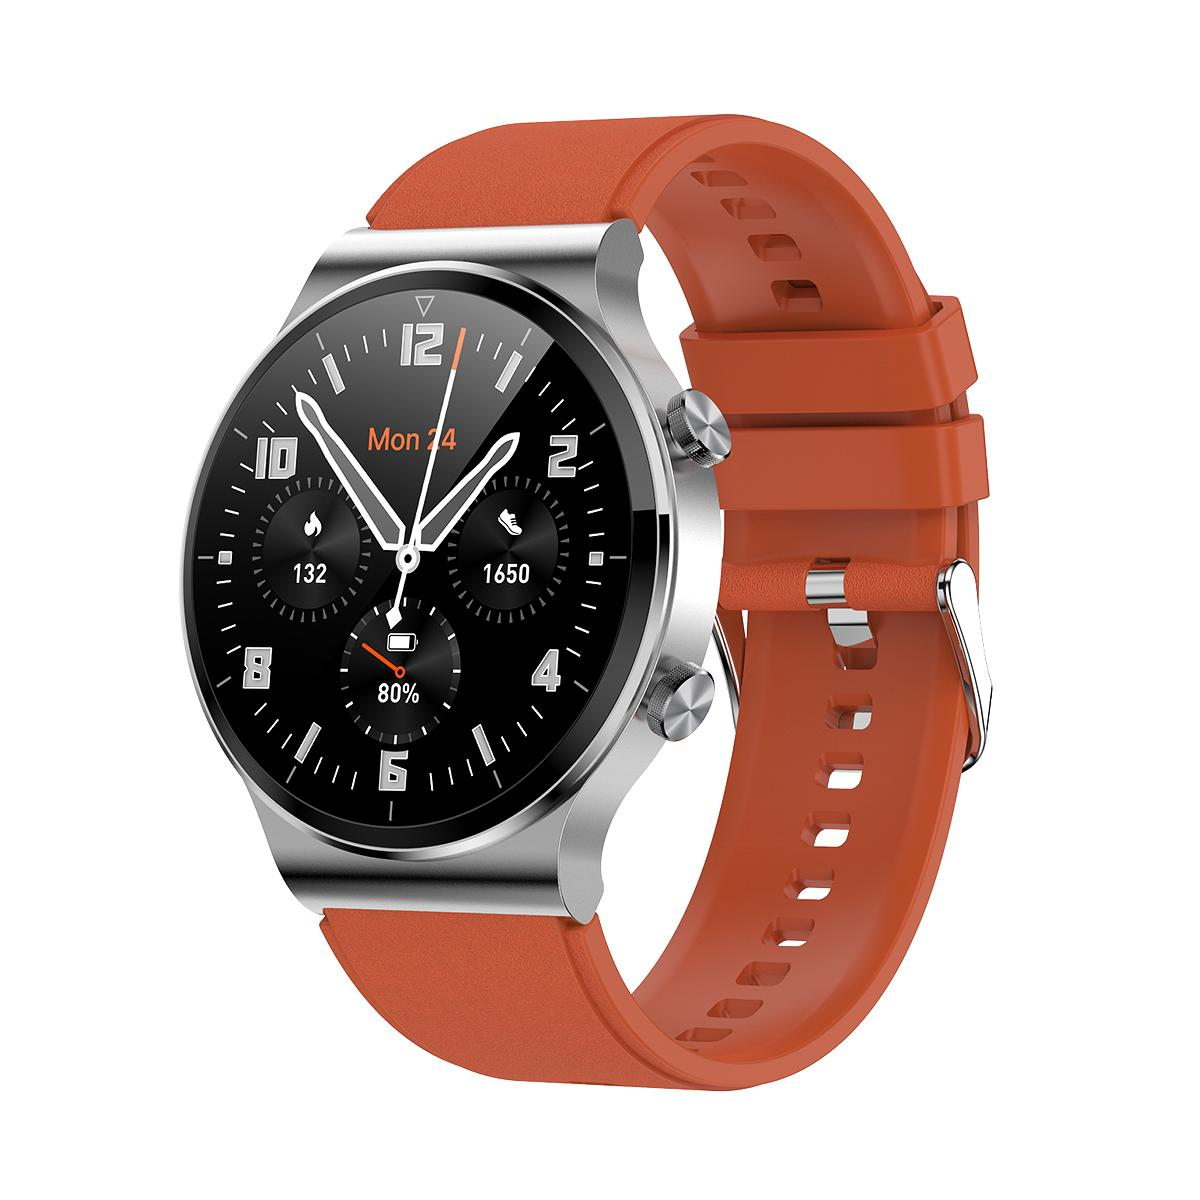 G51 Local muic player smart watch with heart rate/answer call/dial number 2